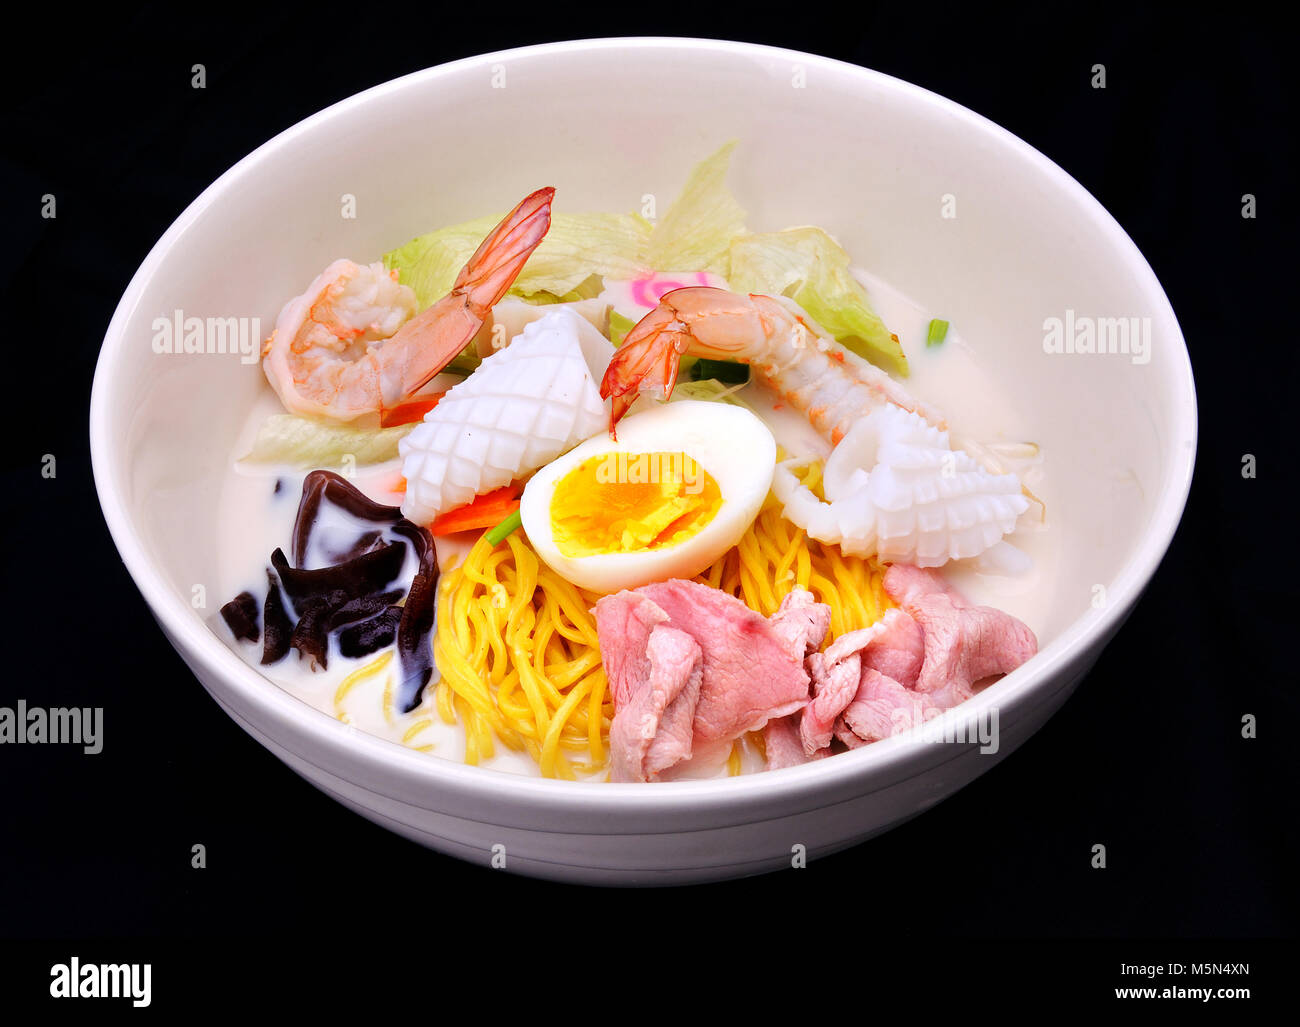 Japanese food style mix eeg shrimp pork squid and other - Stock Image